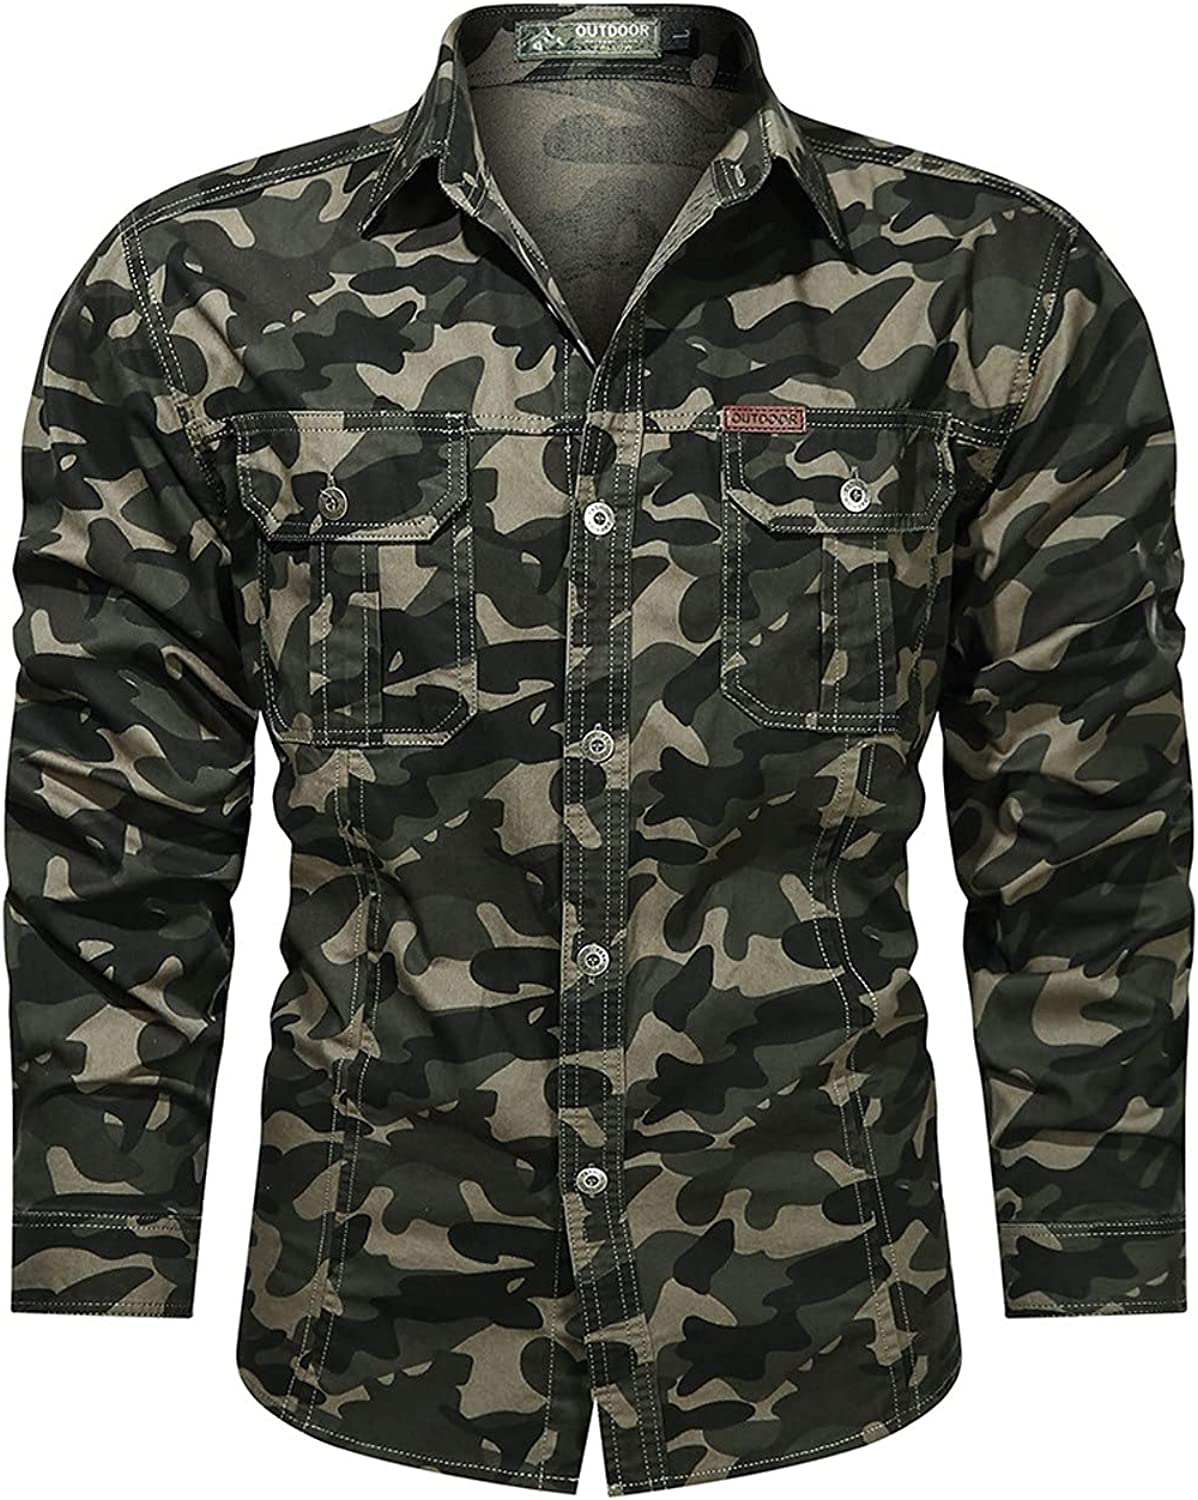 Men's Autumn Long Sleeve Top Plus Sizes Shirts For Men Military Style Blouse Outdoor Coat Cotton Washed